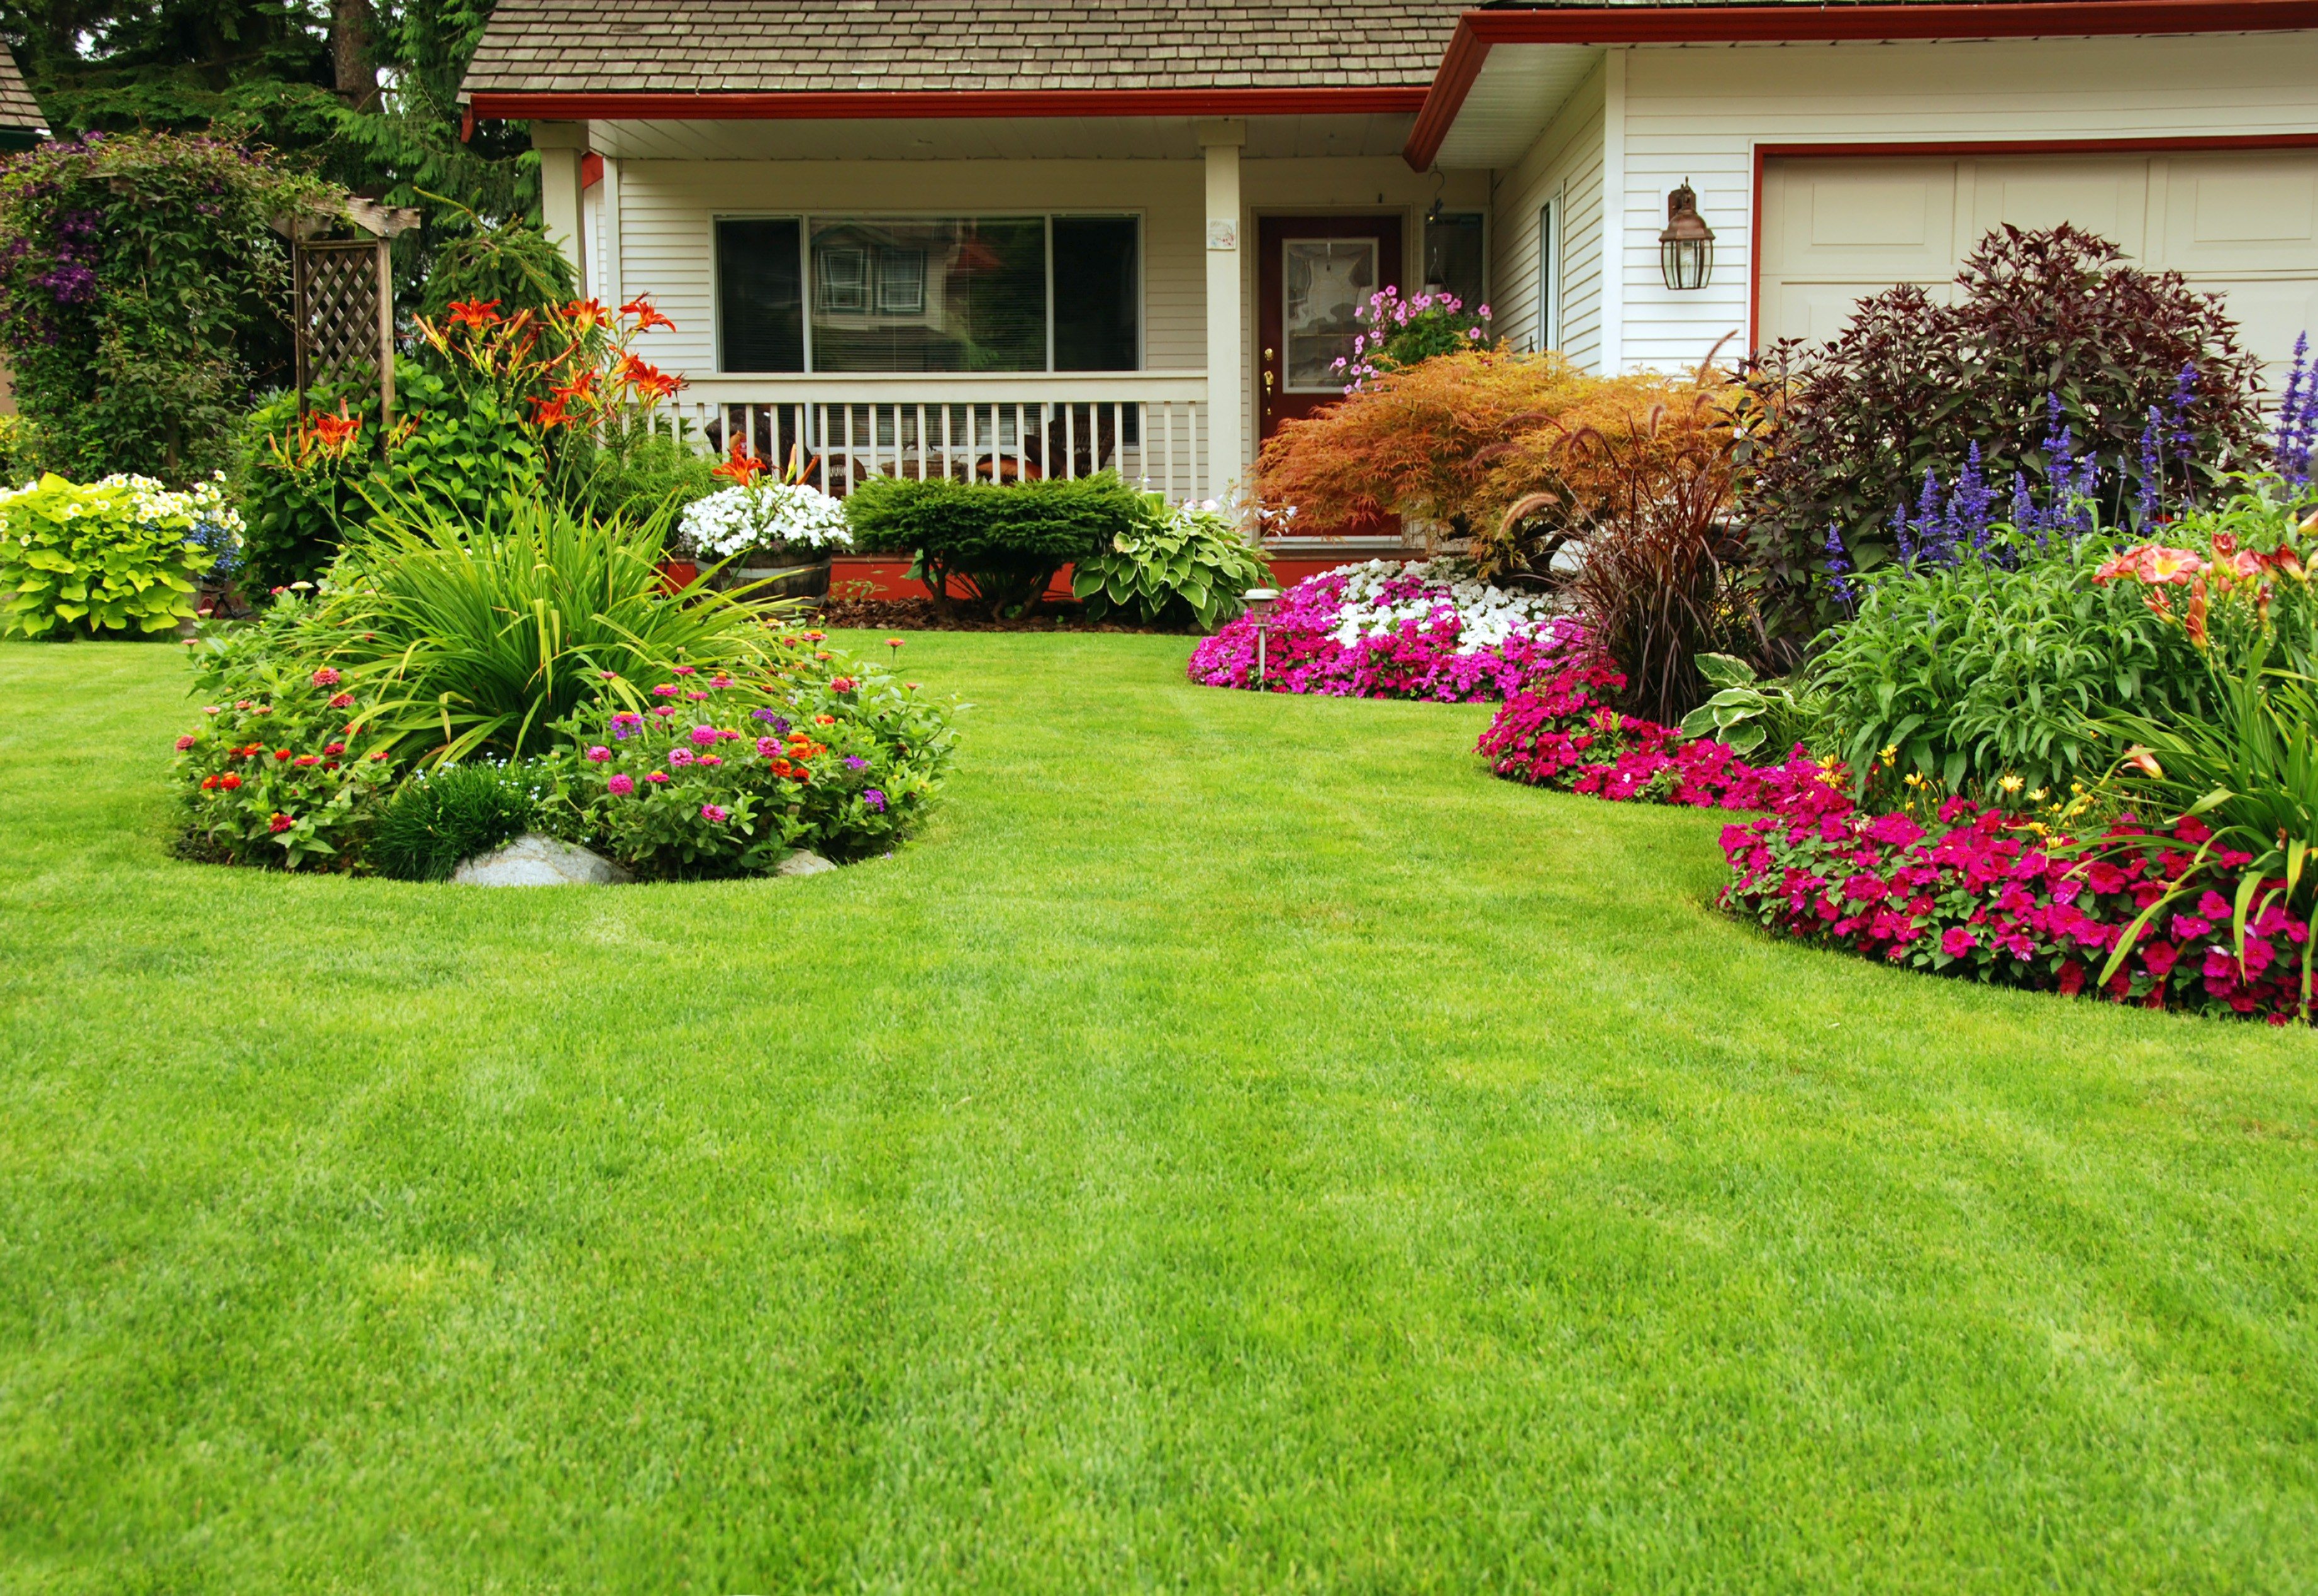 Cape cod style home landscaping ideas - Home style